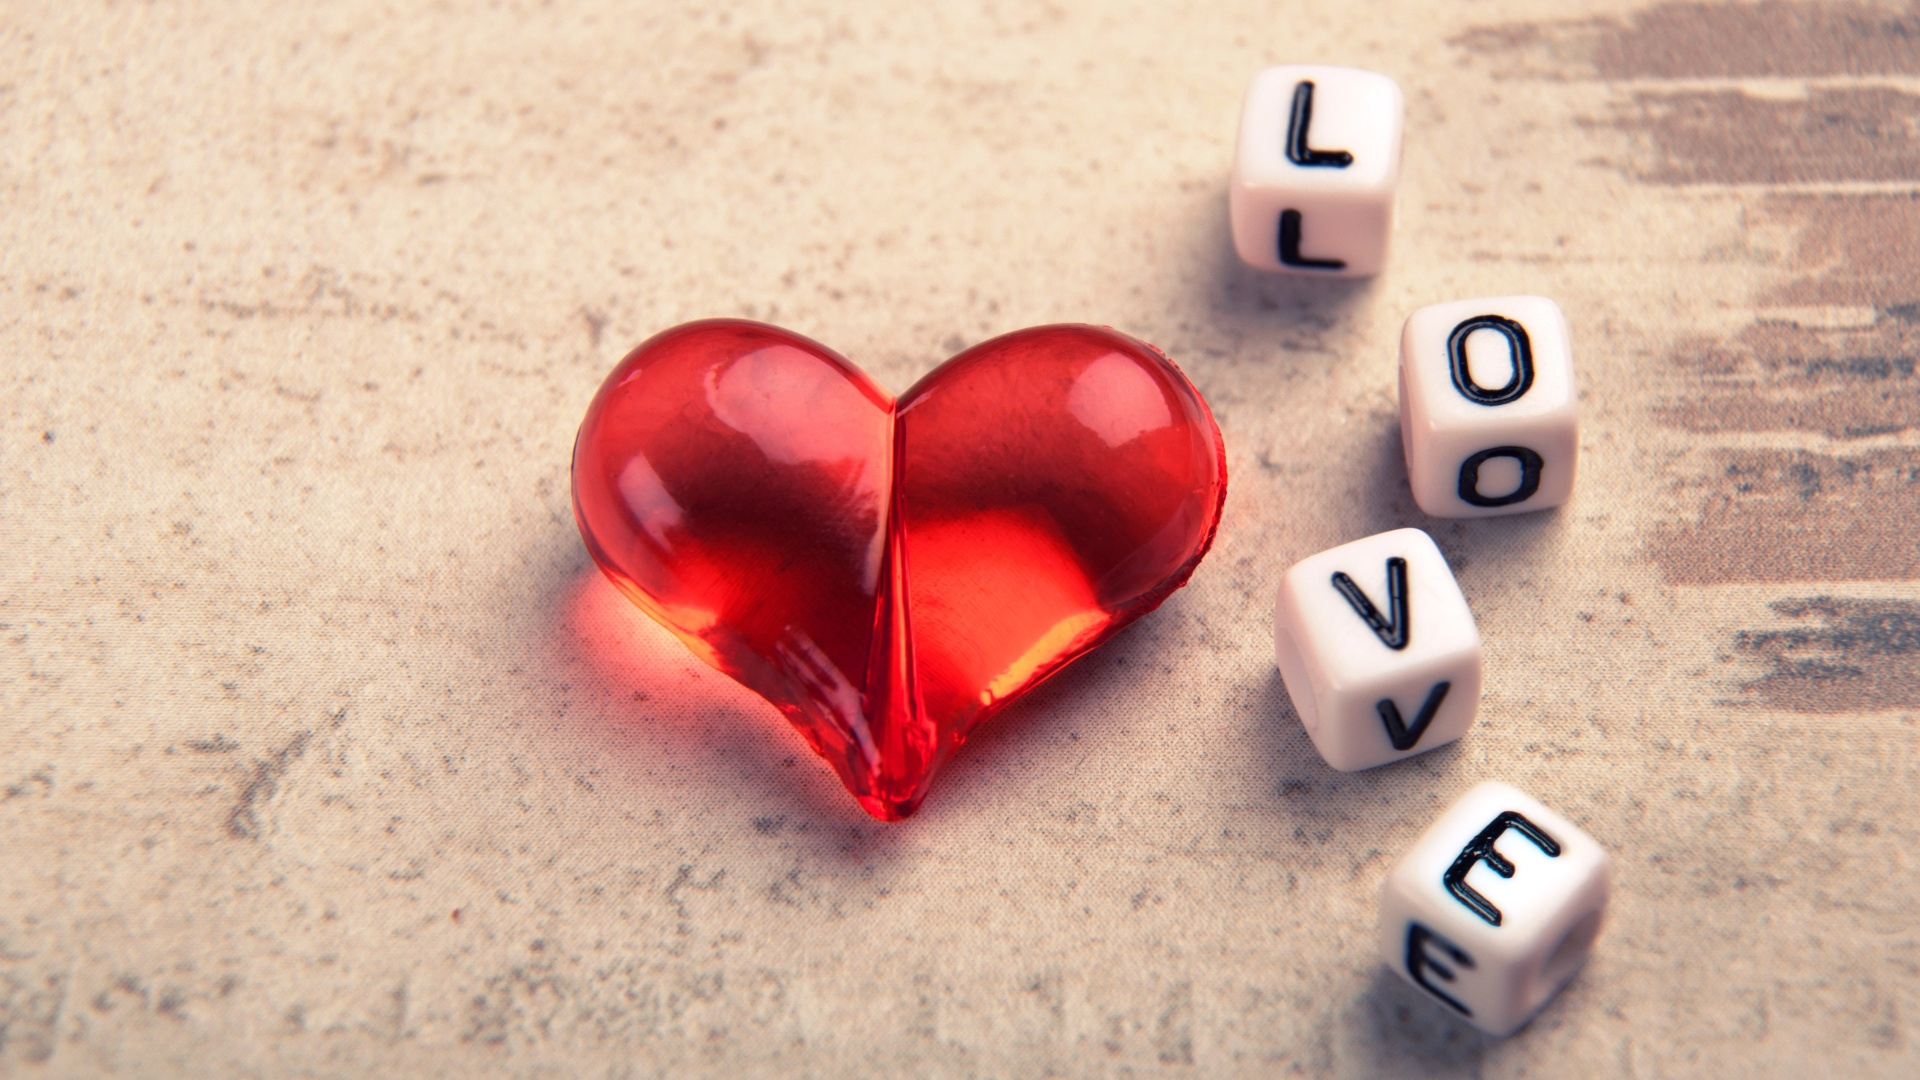 sweet romantic love heart wallpapers 1920x1080 605404